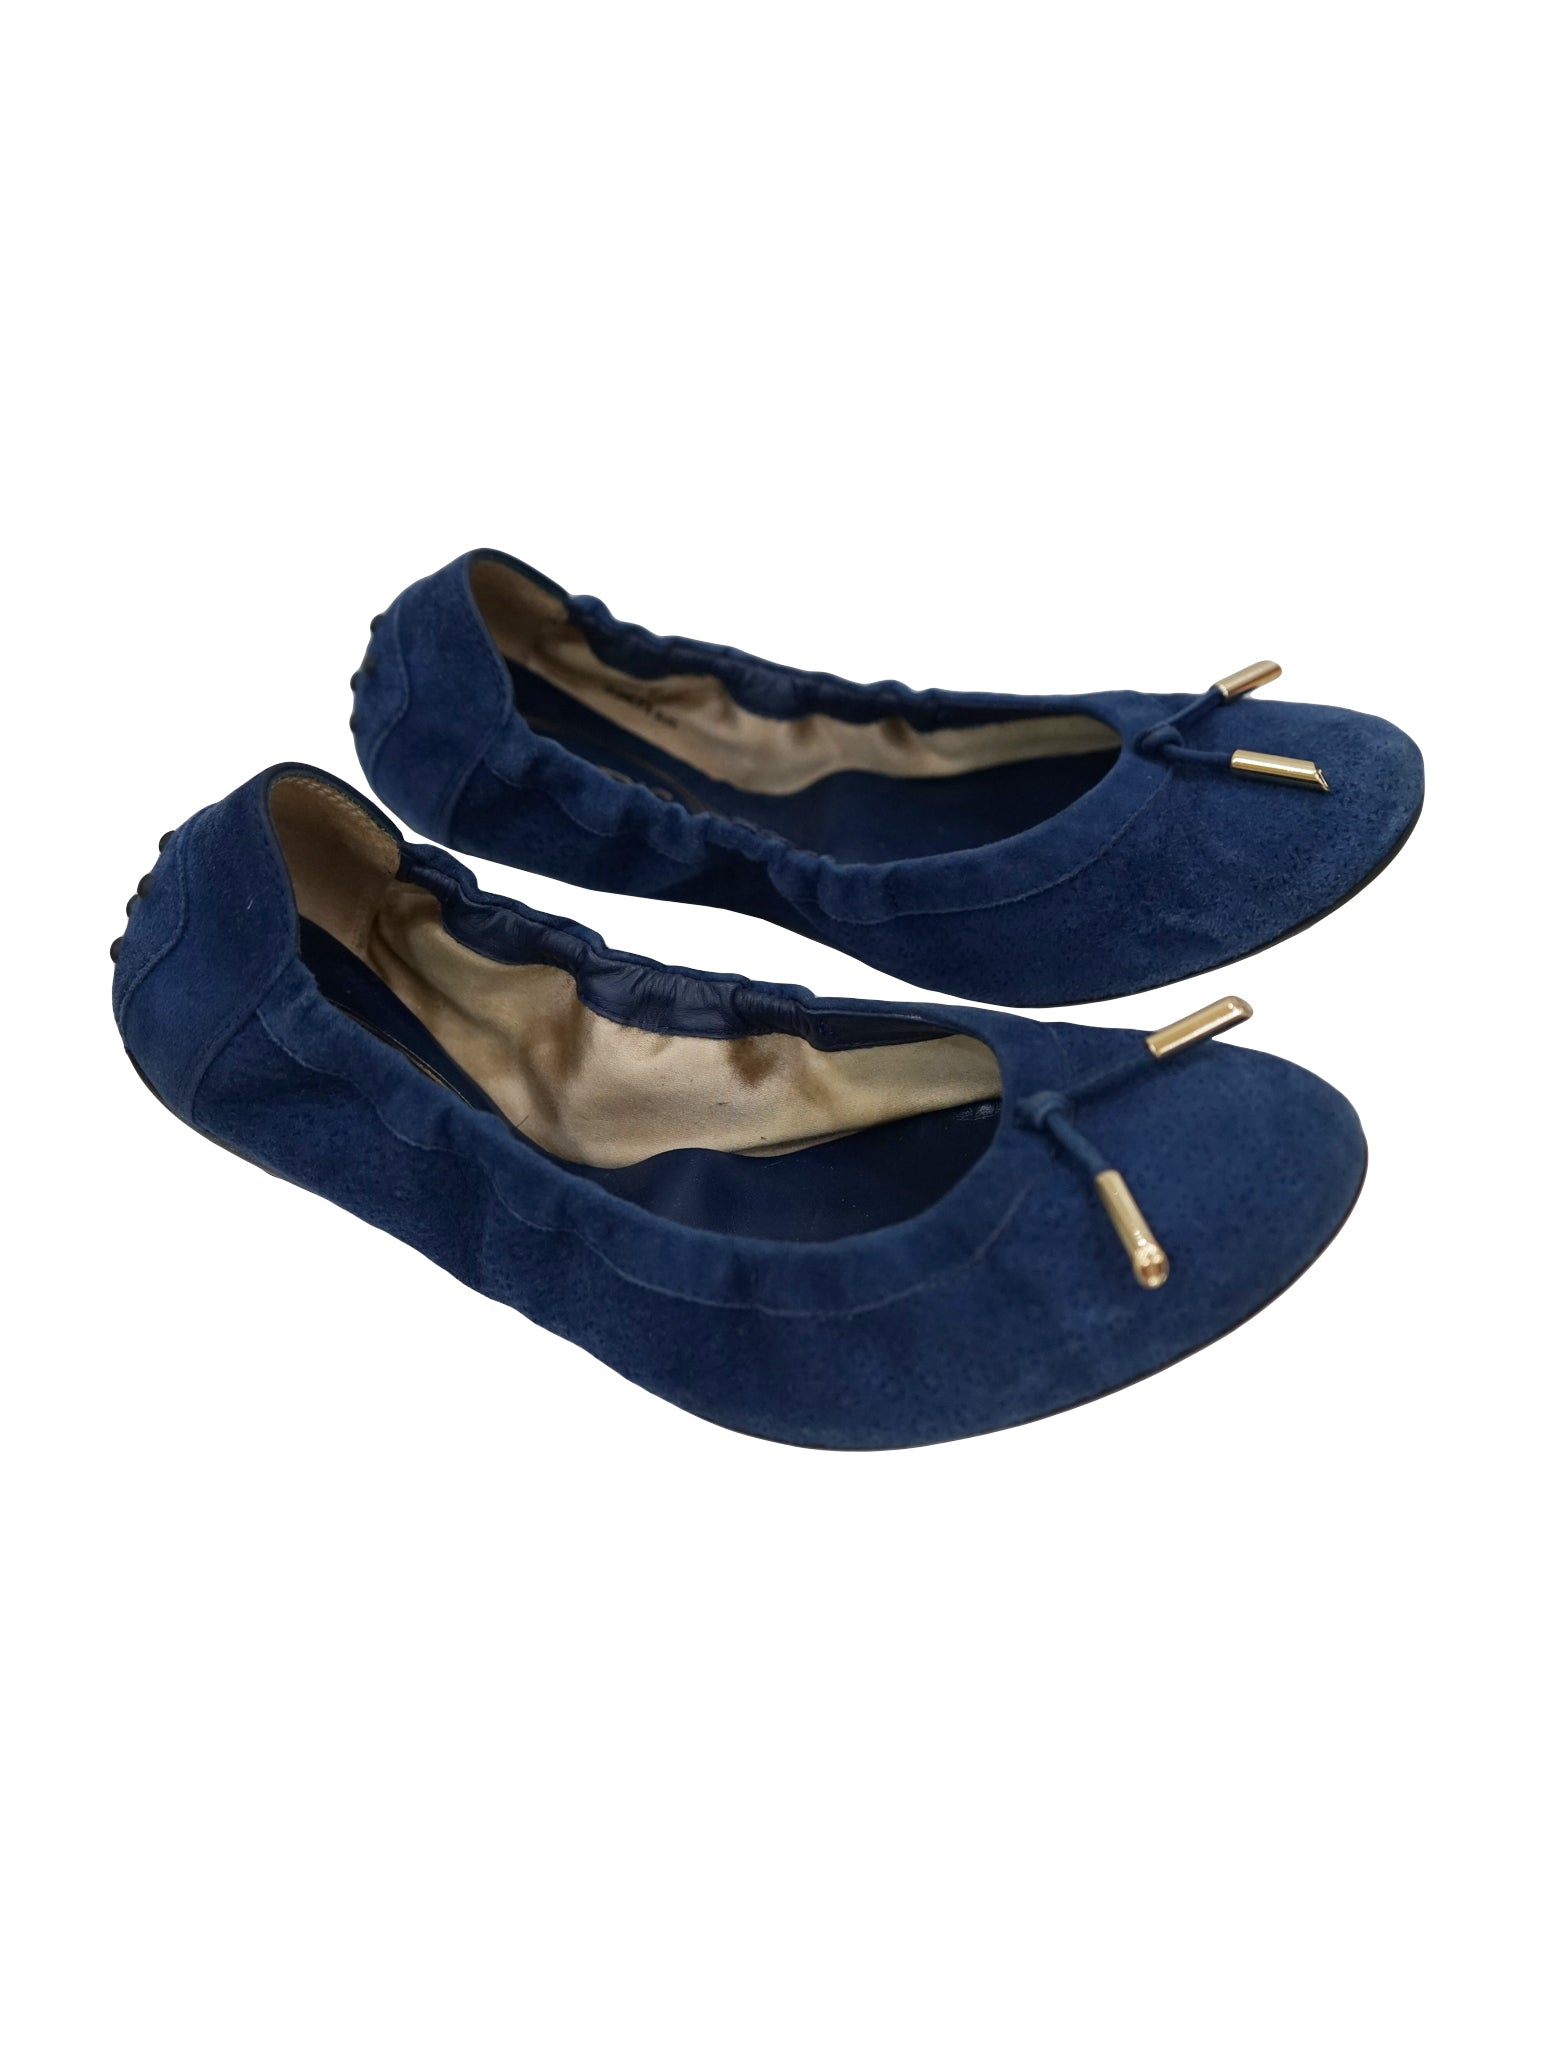 SUEDE BLUE LEATHER BALLERINA